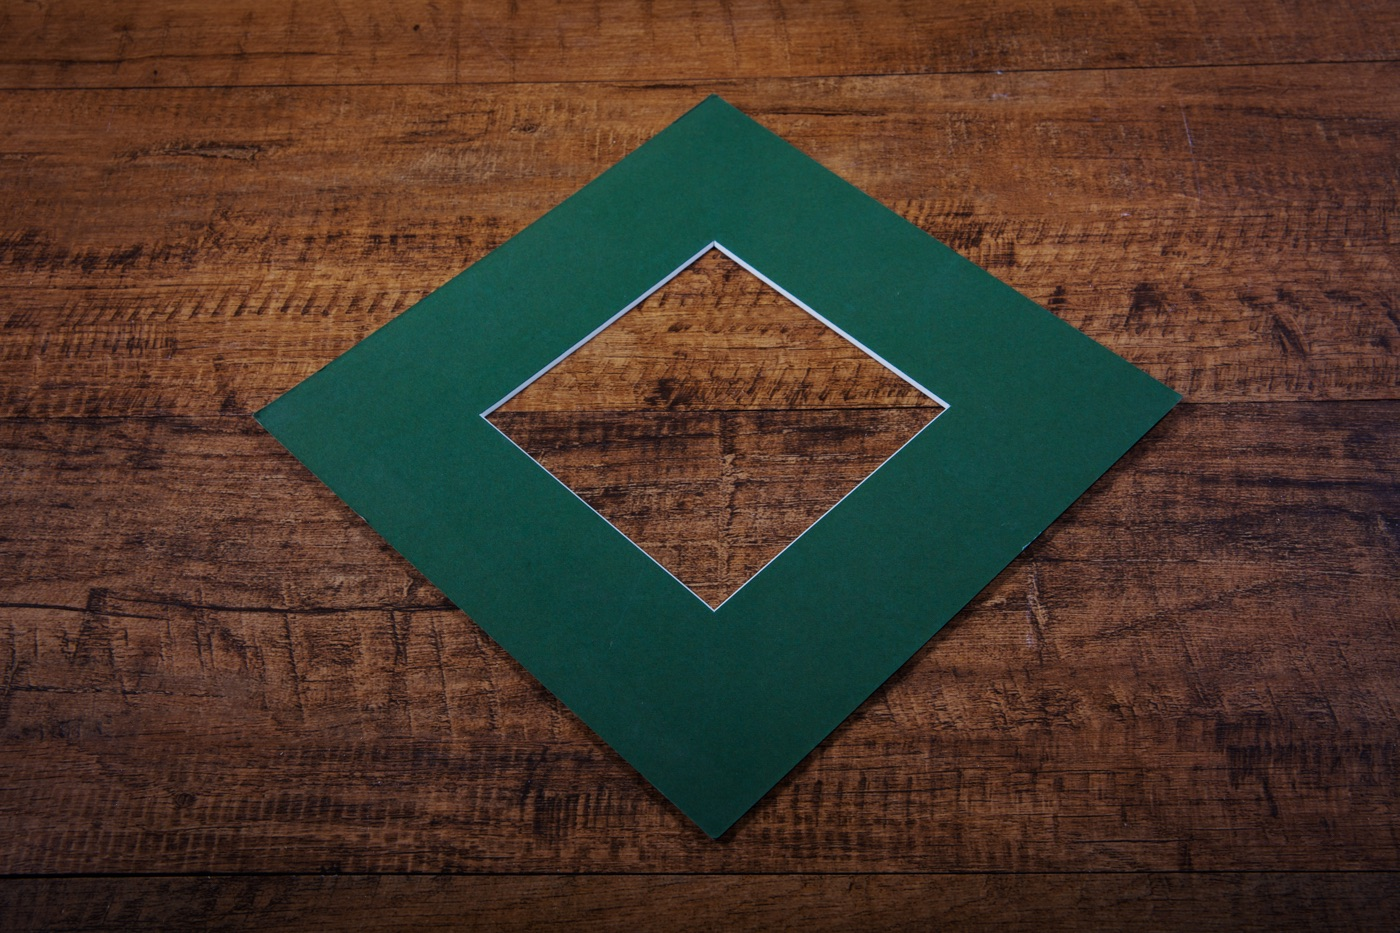 mount board in bottle green